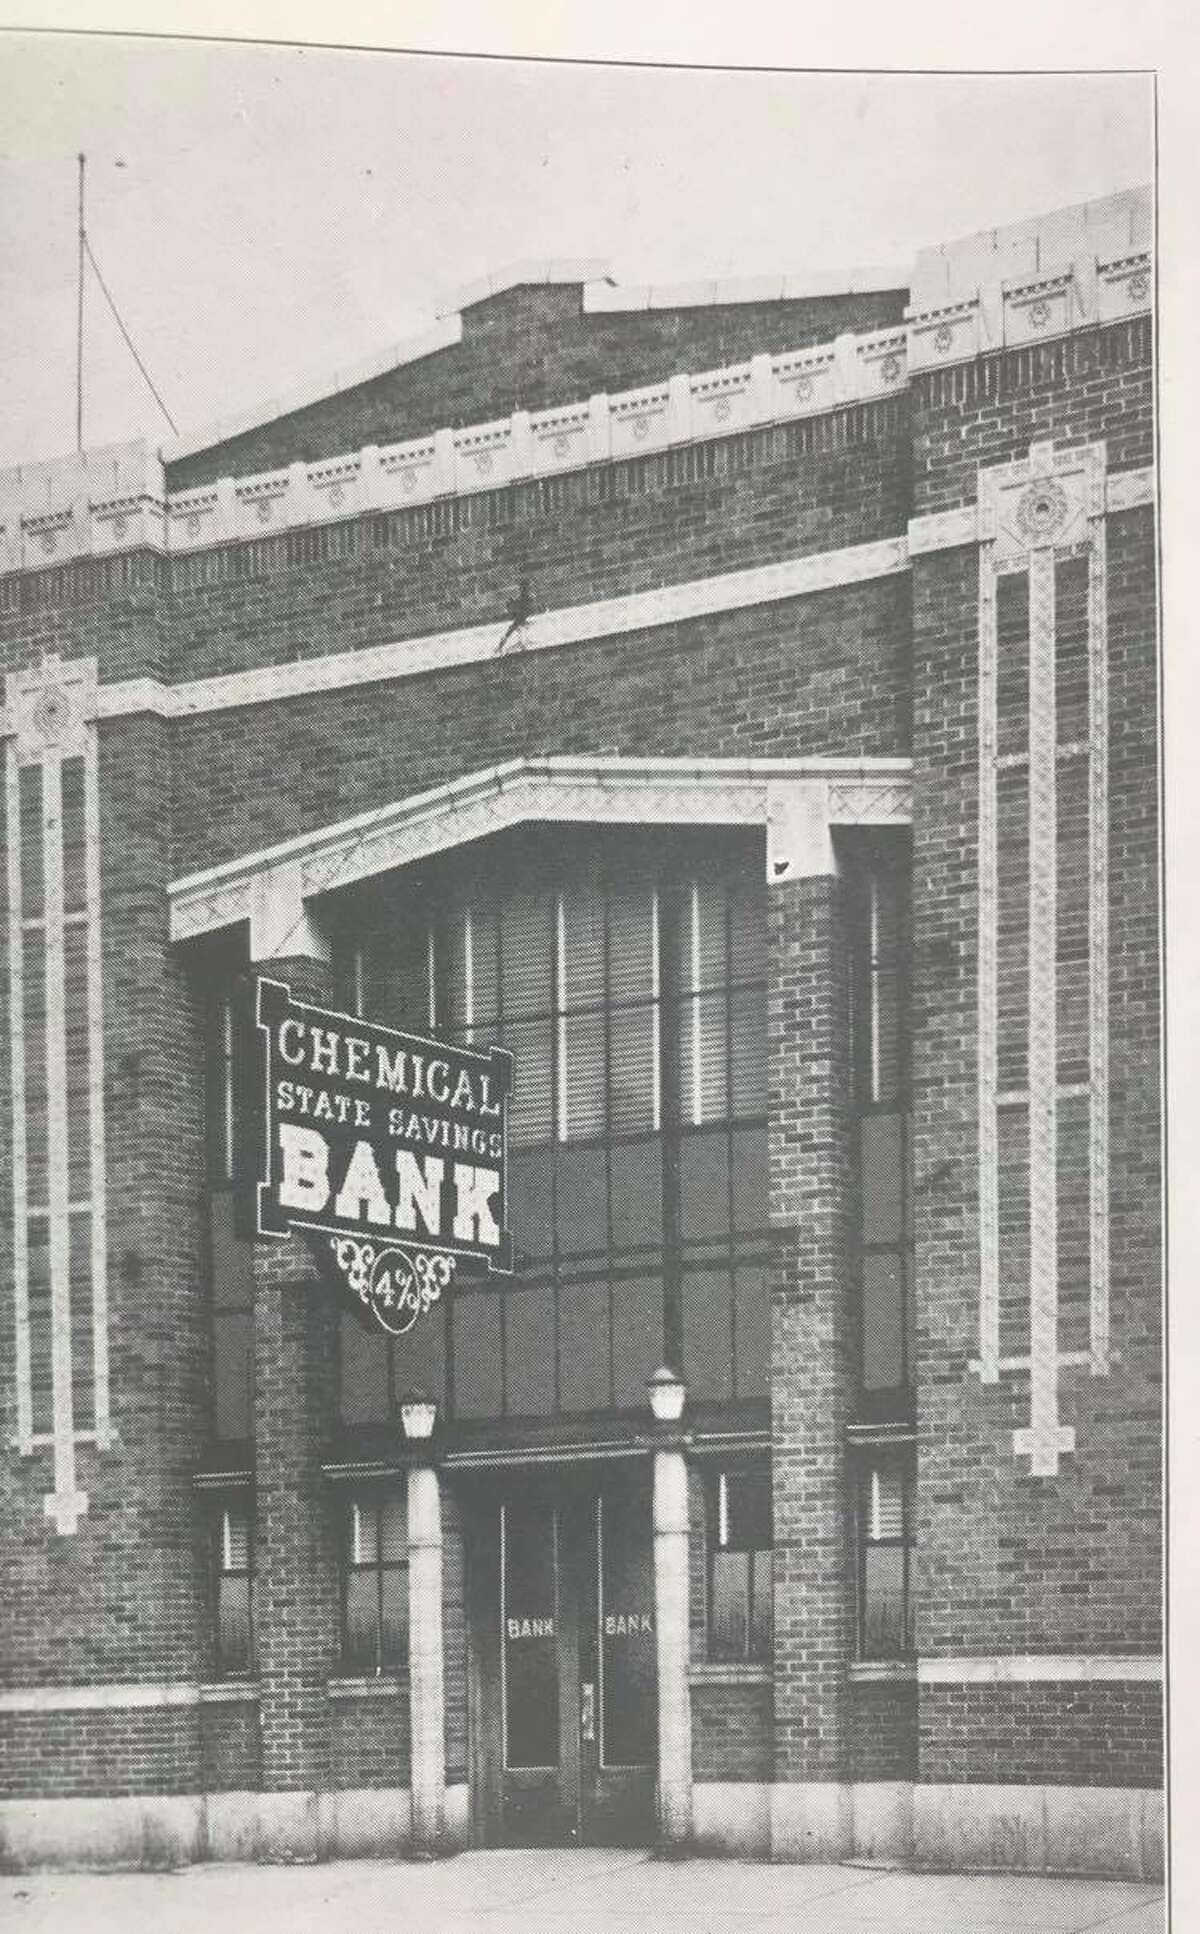 Chemical State Savings Bank, organized in 1917, as it appeared in the November 1926 Midland Sun special section portraying the City of Midland. Its assets as of June 30, 1926, were listed as $1,275,308.27. C.H. Macomber was president; E.W. Bennett, vice president; L.A. Chichester, cashier; H. LeRoy Durbin and Guy Rogers, assistant cashiers. Directors were E.O. Barstow, Gilbert A. Currie, Thomas Griswold Jr. and James T. Pardee